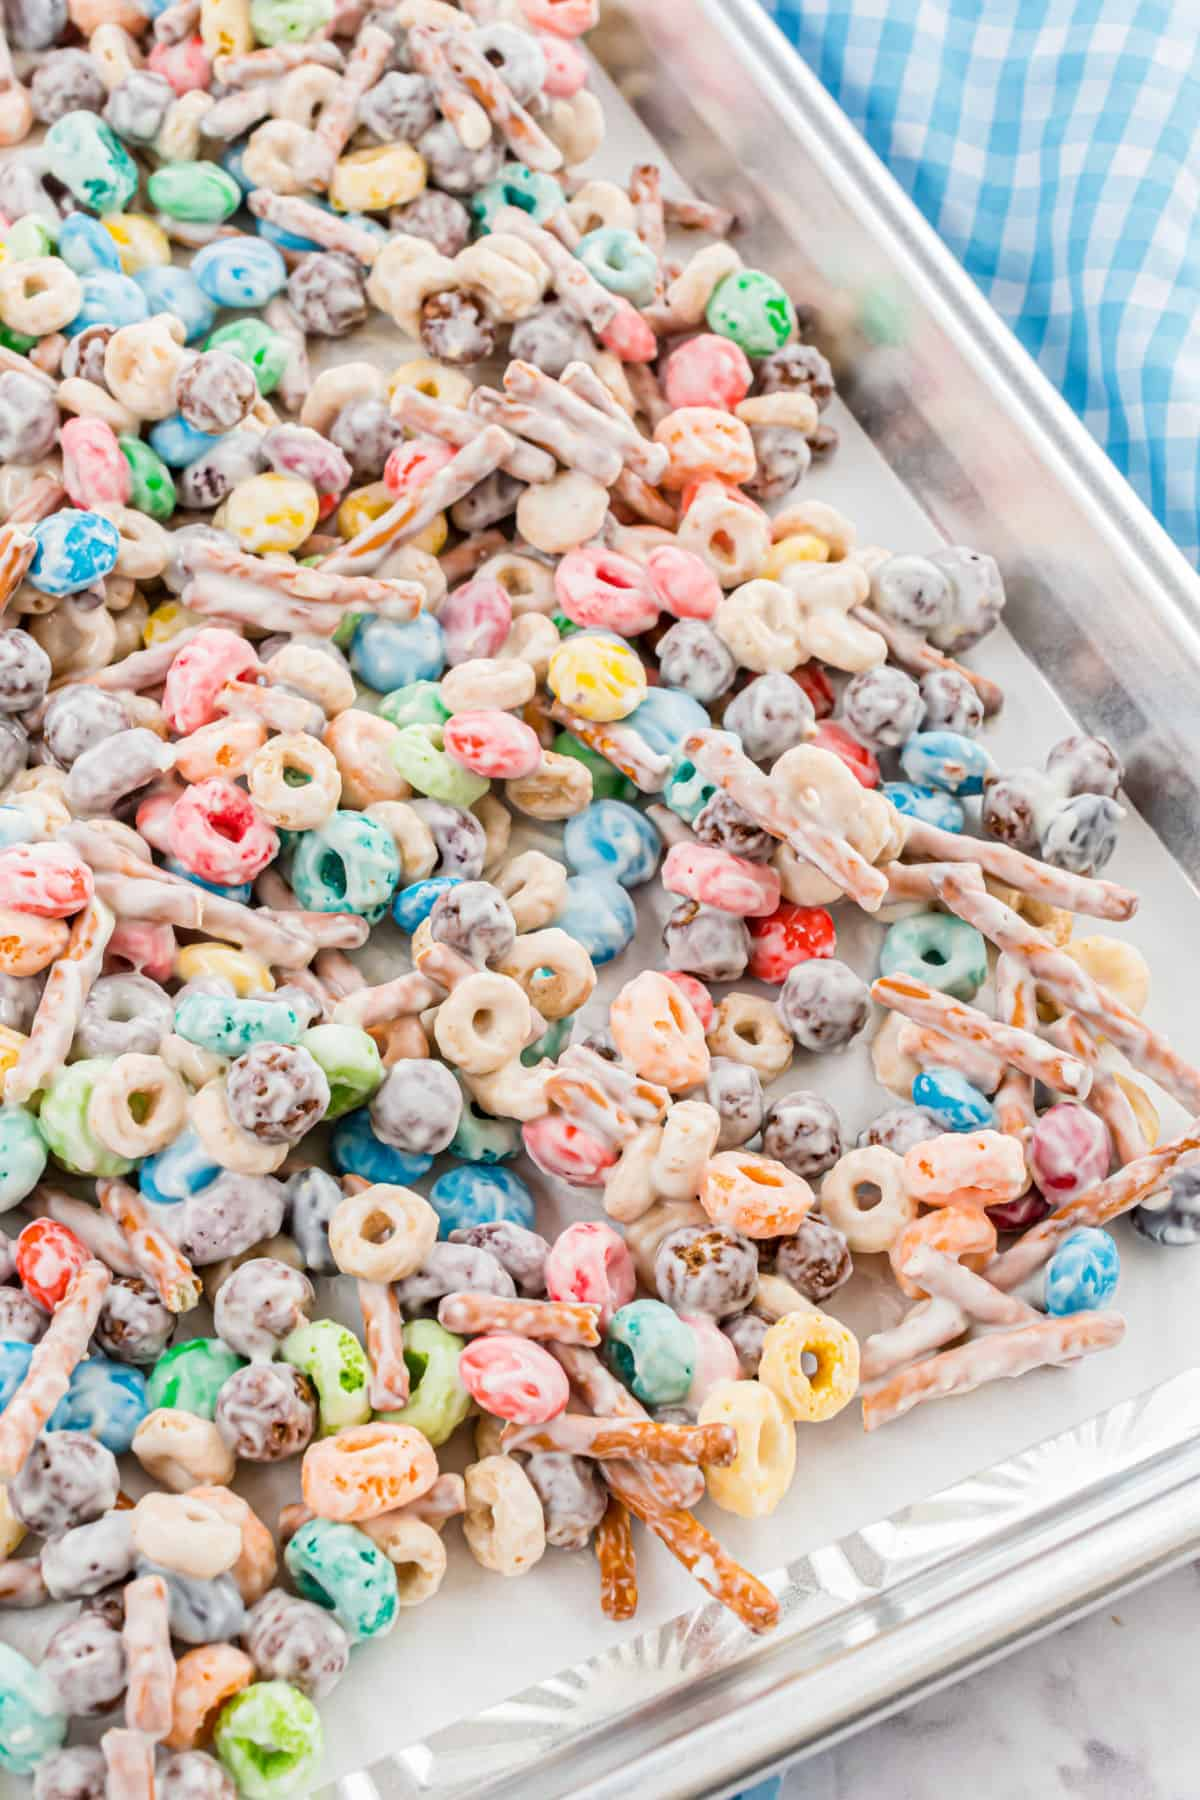 White trash candy mix spread onto a parchment paper lined cookie sheet.